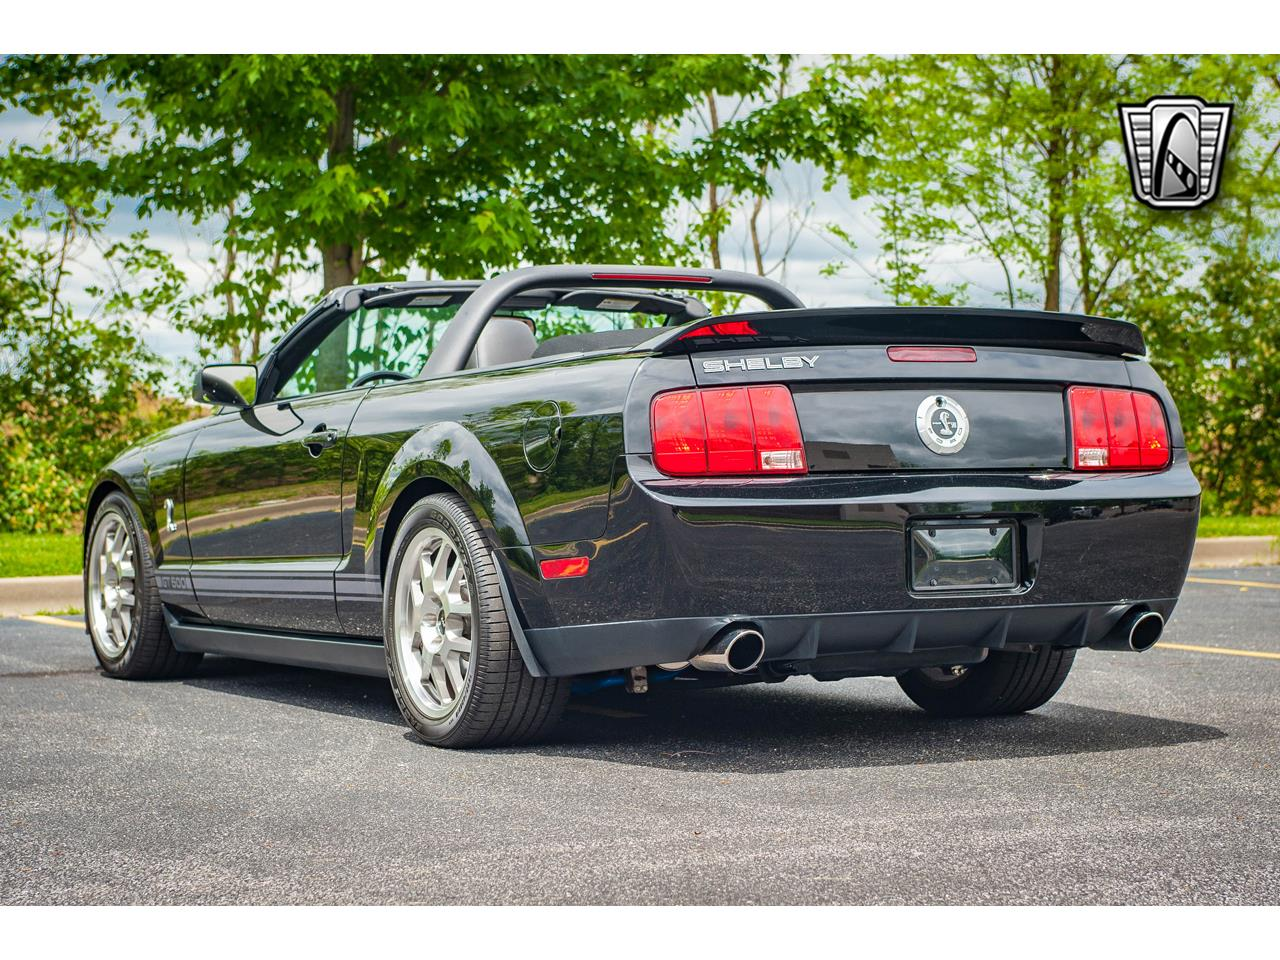 Large Picture of 2007 Ford Mustang located in O'Fallon Illinois Offered by Gateway Classic Cars - St. Louis - QB98